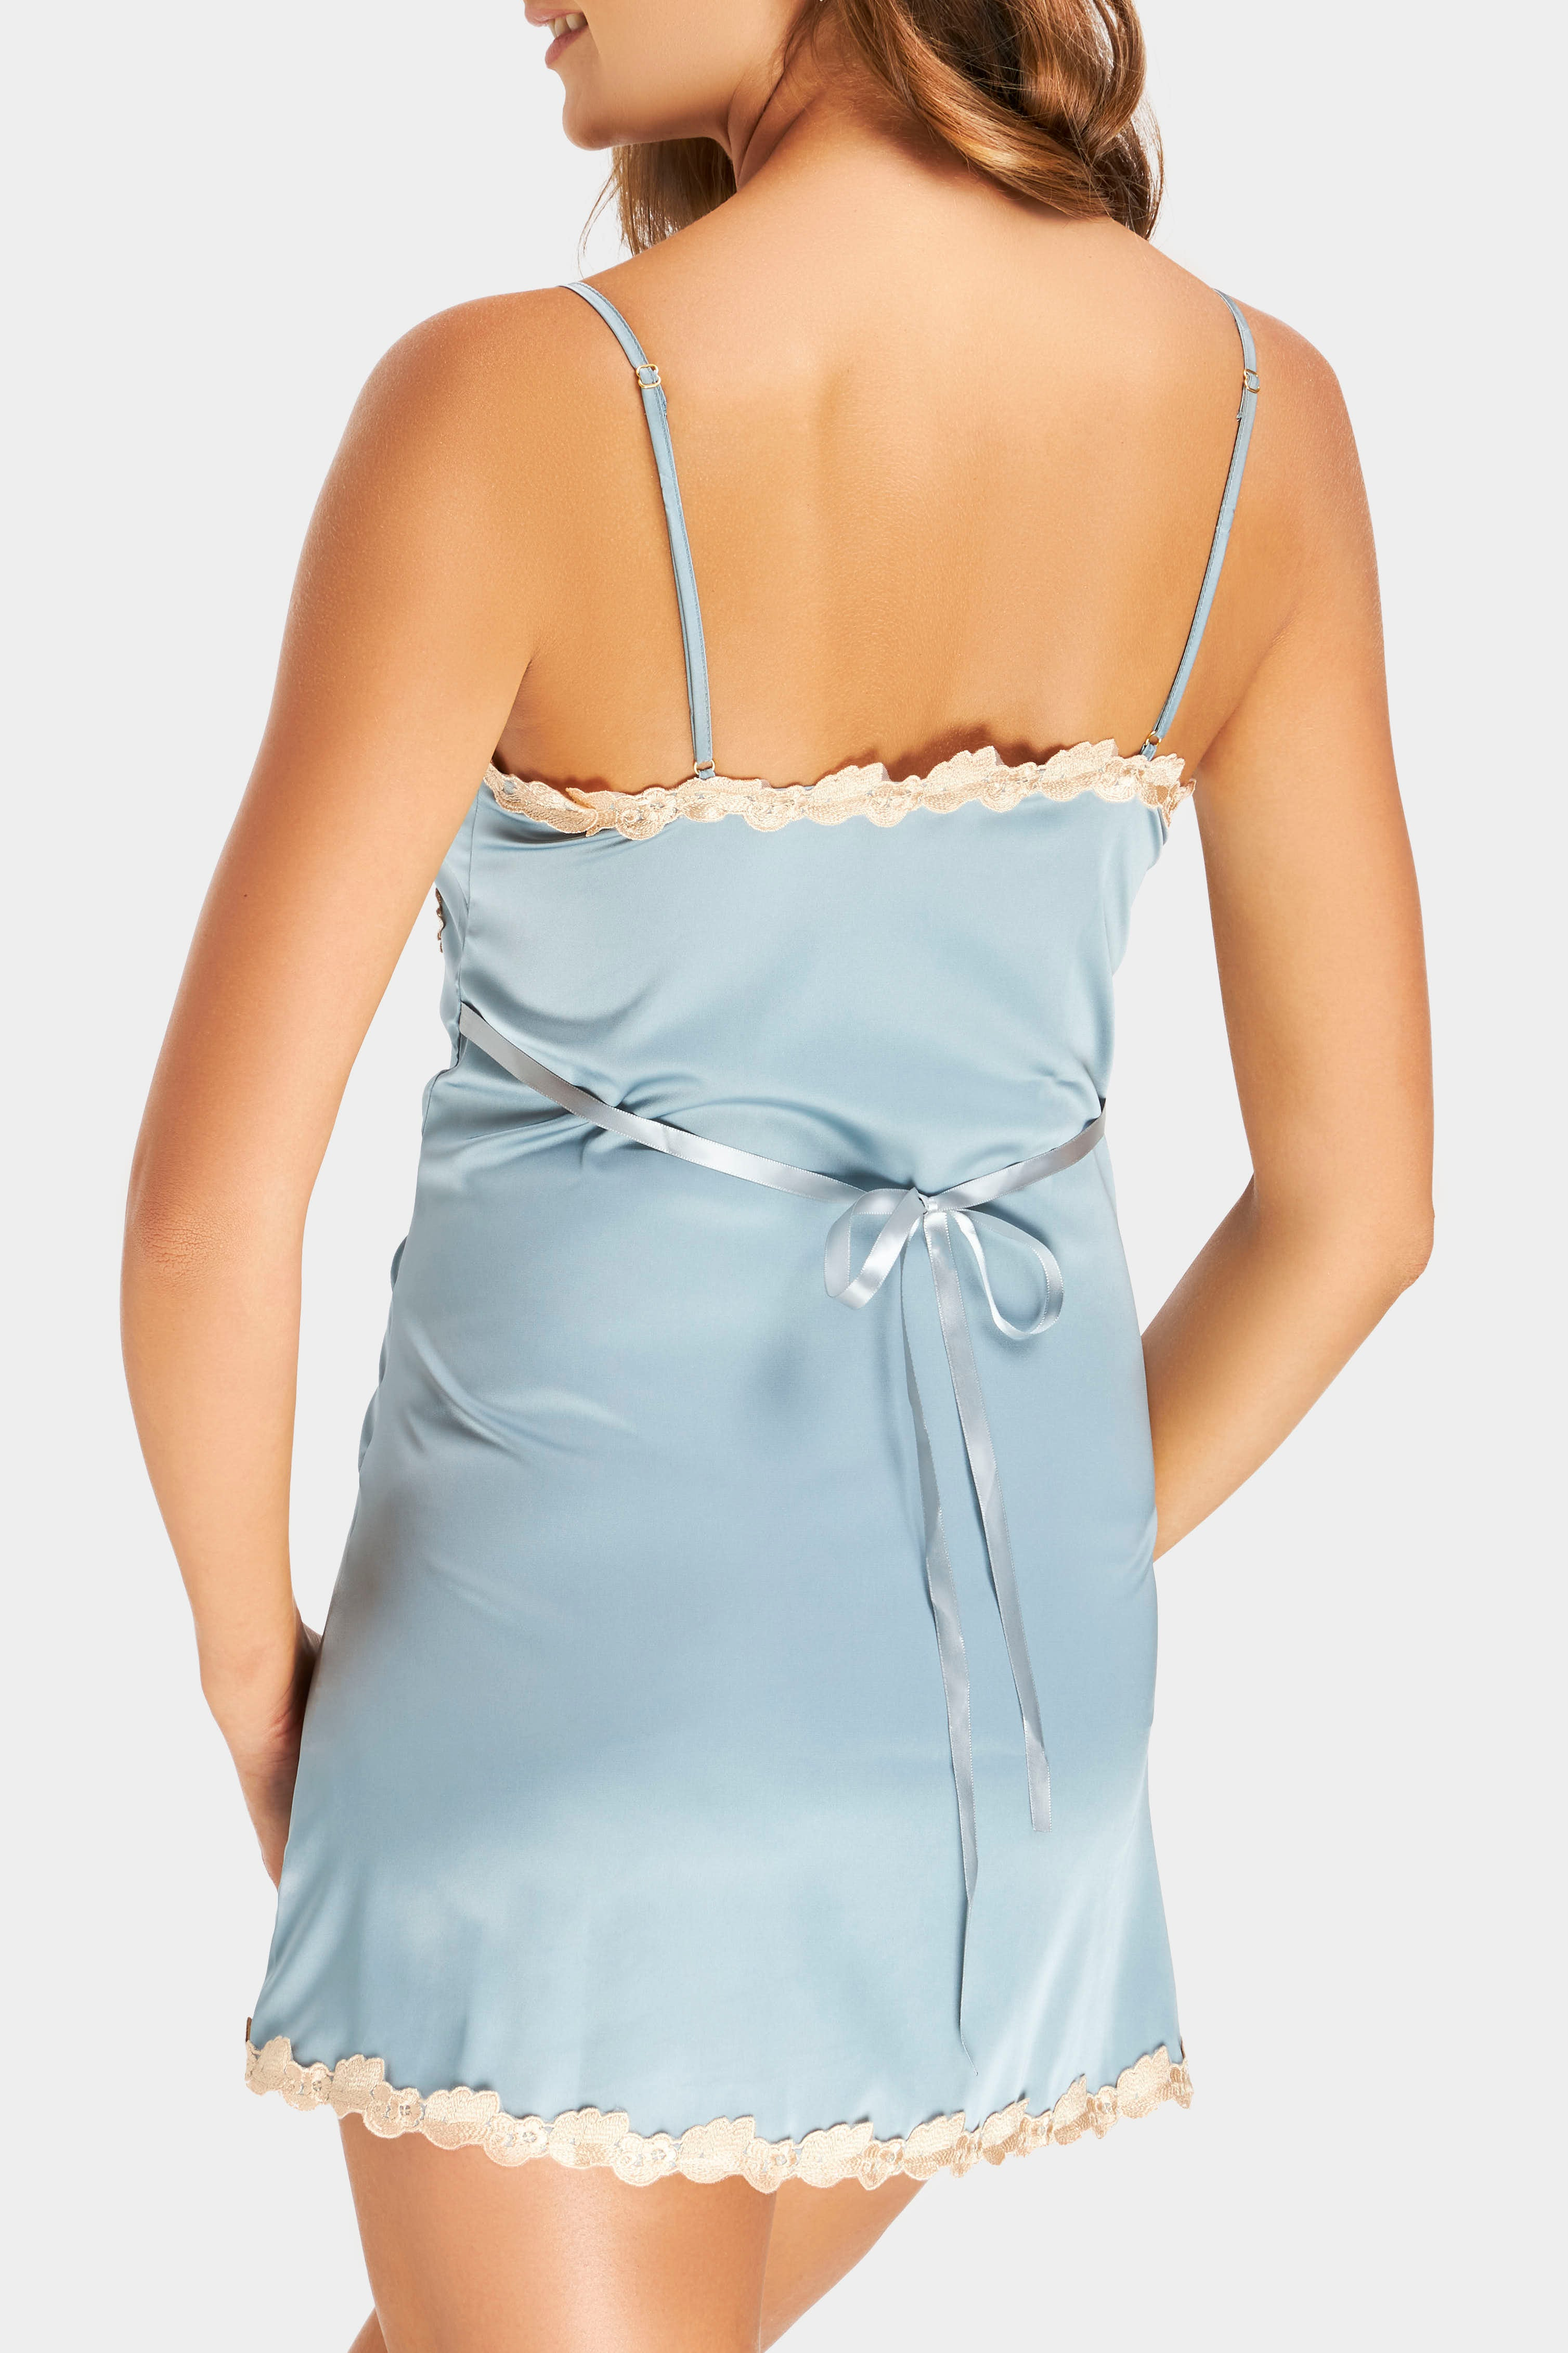 Satin Dreams Blue Bells Nightdress